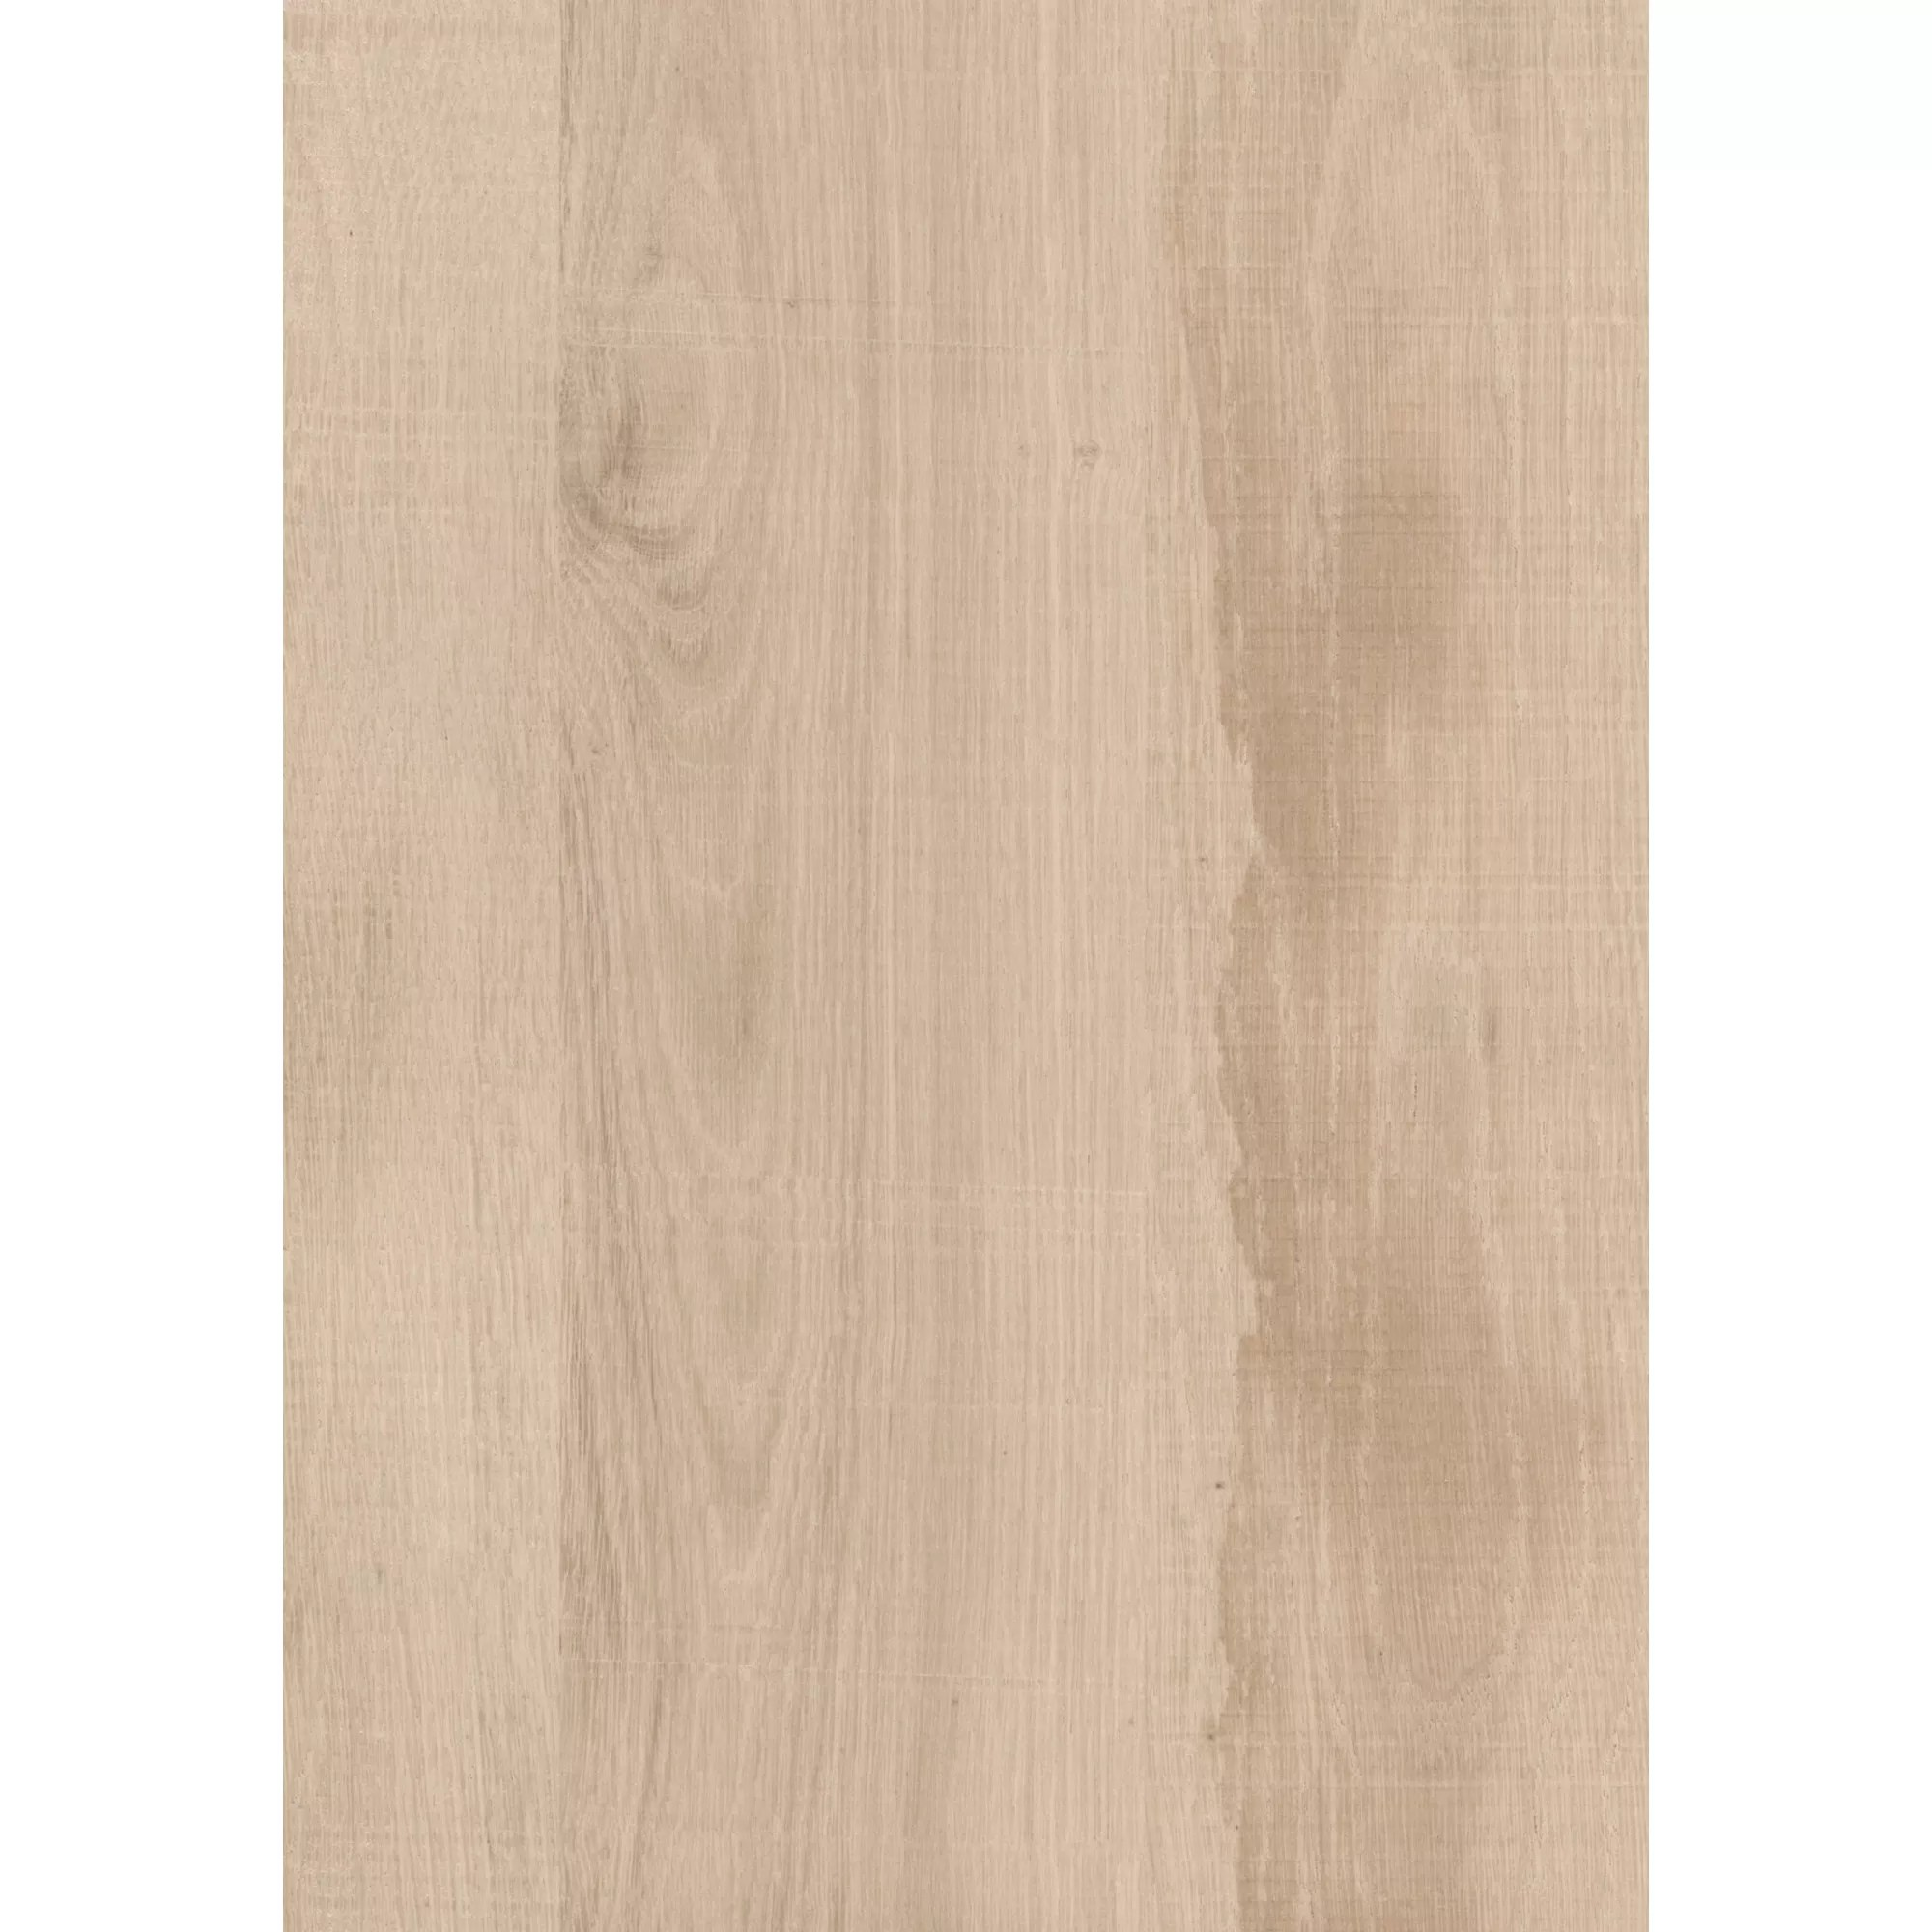 Vereg Arbeitsplatte Native Oak Light K4410 Hellbraun 4100 X 635 X 38 Mm ǀ Toom Baumarkt